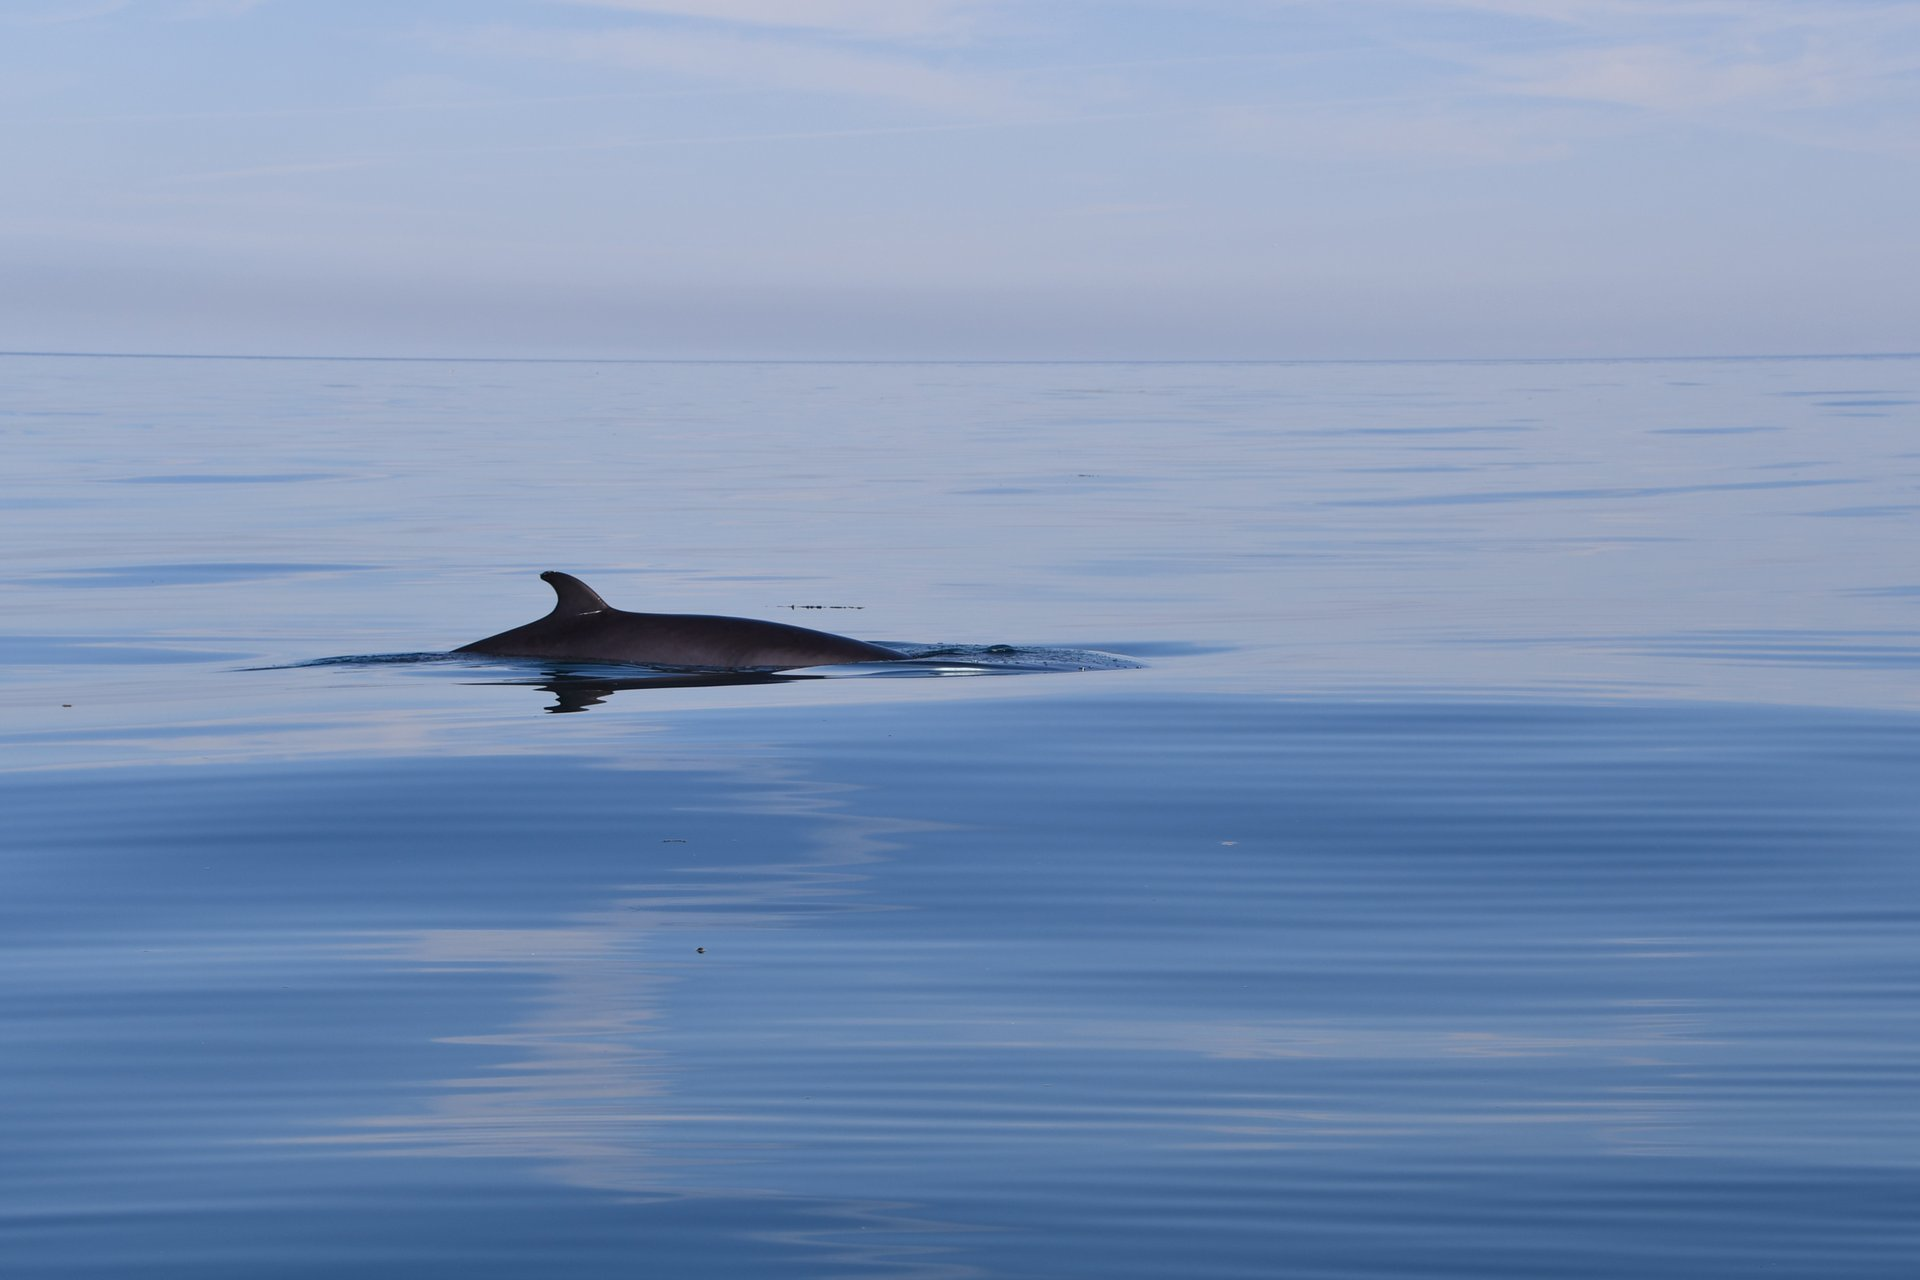 Dolphin & Whale Watching in Wales in Wales 2020 - Best Time